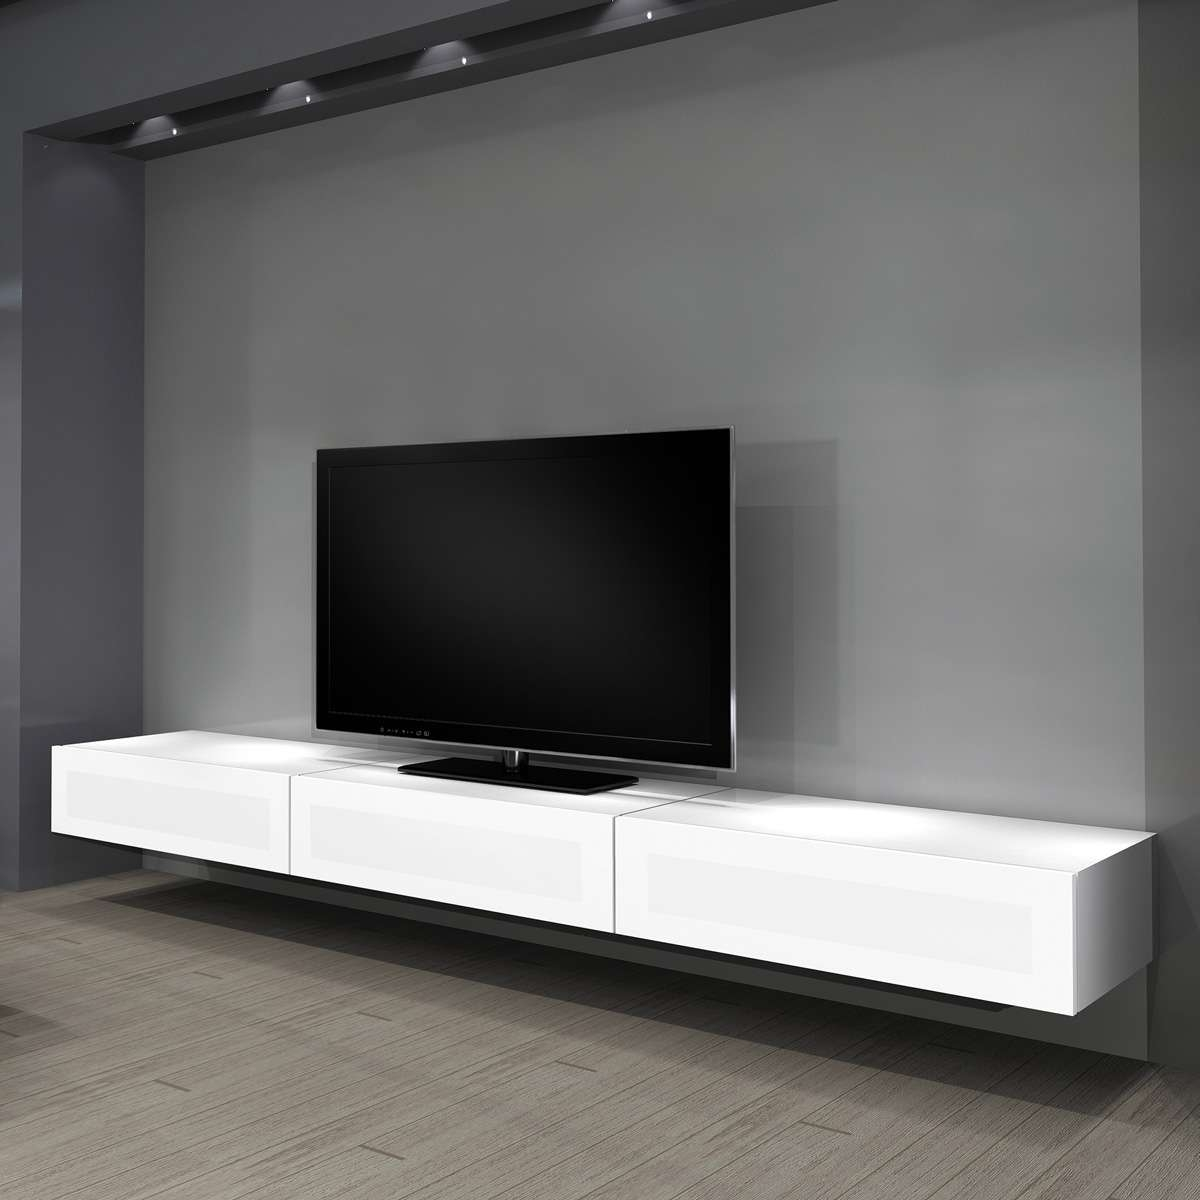 White Wall Mounted Tv Stands Furniture Pinterest Cabinets Black Pertaining To Modern Wall Mount Tv Stands (View 16 of 20)